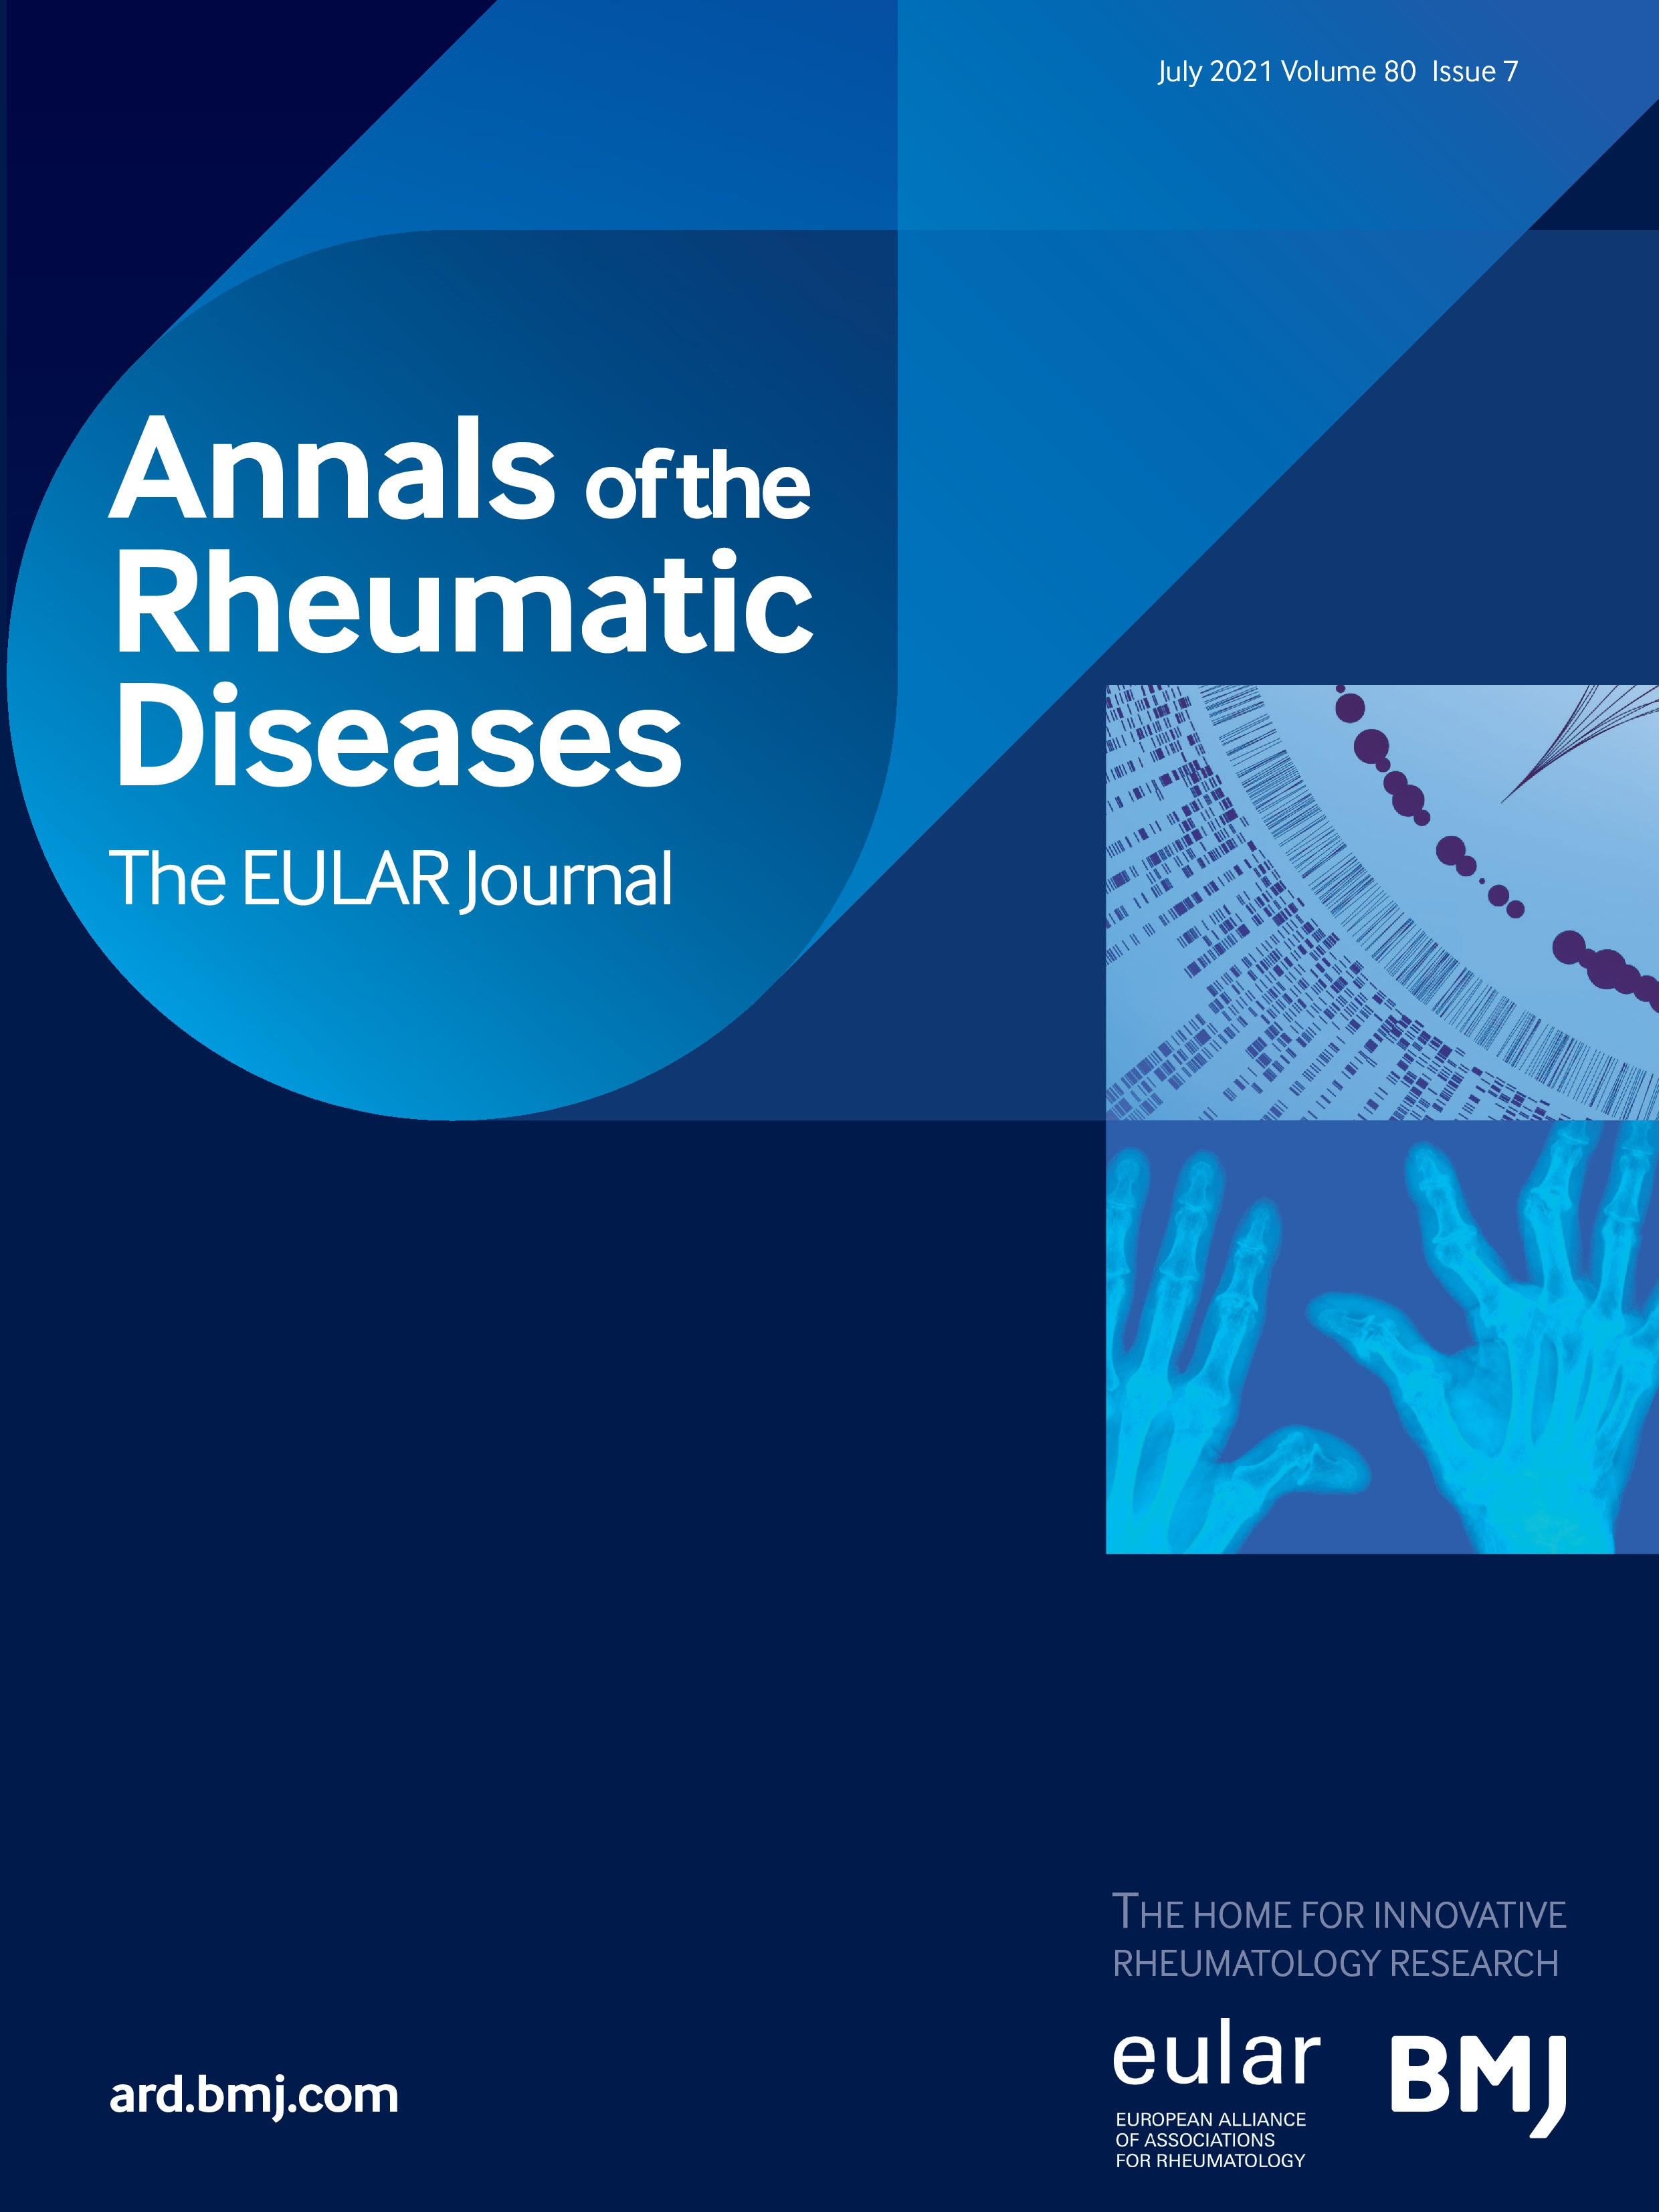 Factors associated with COVID-19-related death in people with rheumatic diseases: results from the COVID-19 Global Rheumatology Alliance physician-reported registry